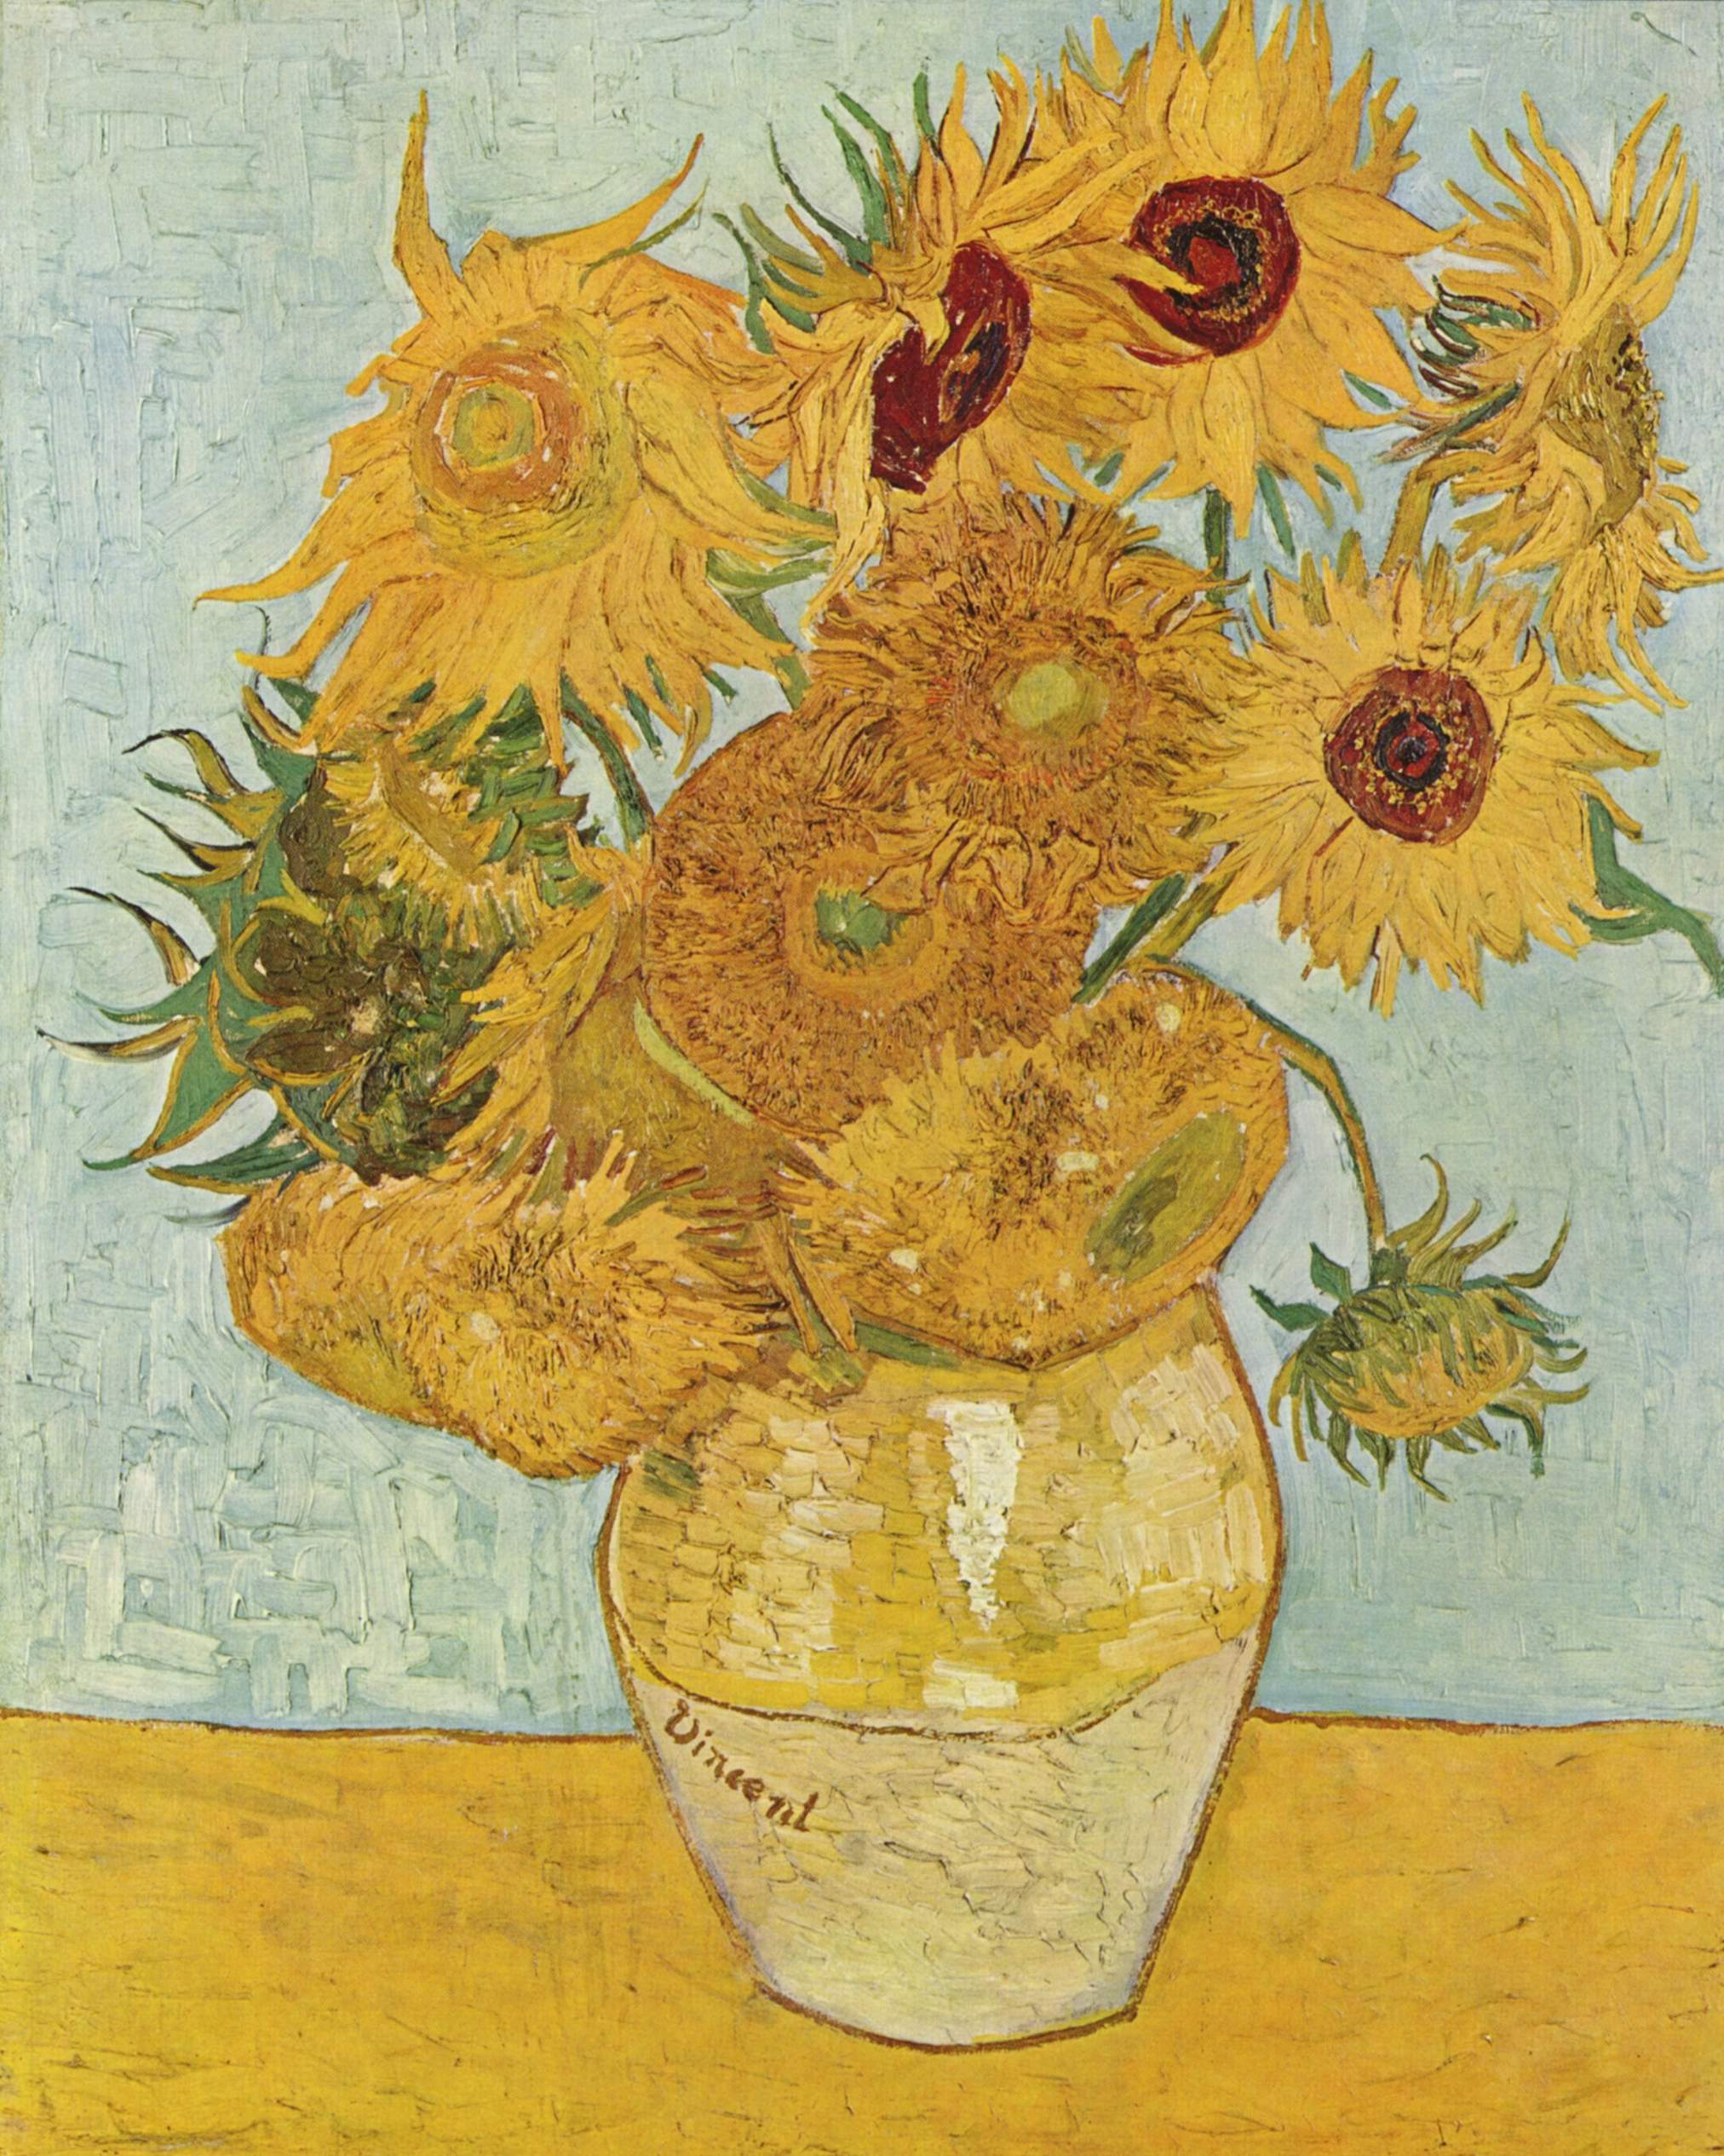 File:Vincent Willem van Gogh 128.jpg - Wikimedia Commonsvincent van ghog